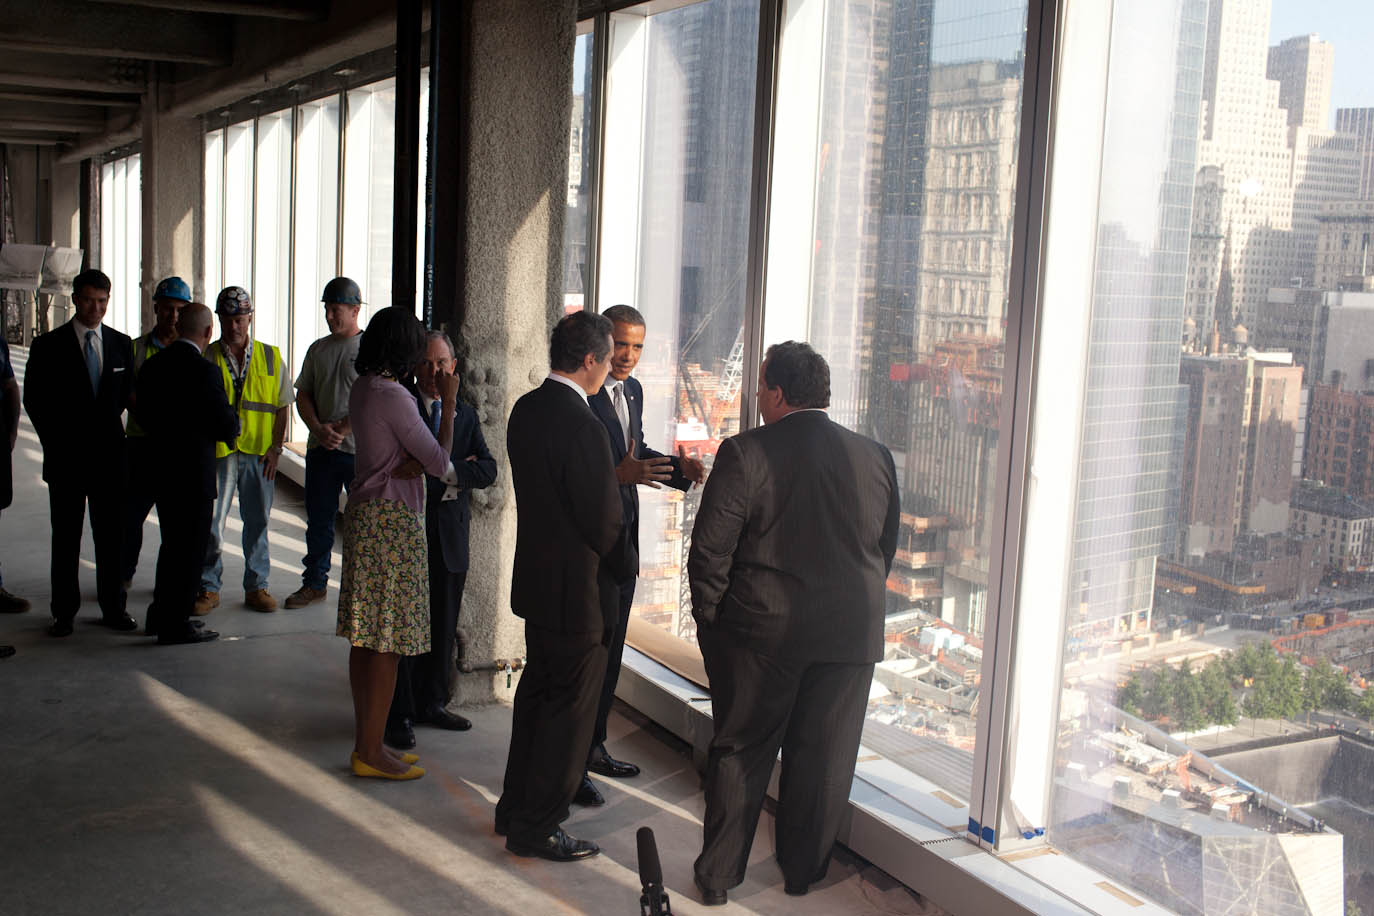 President Barack Obama and First Lady Michelle Obama tour the One World Trade Center site